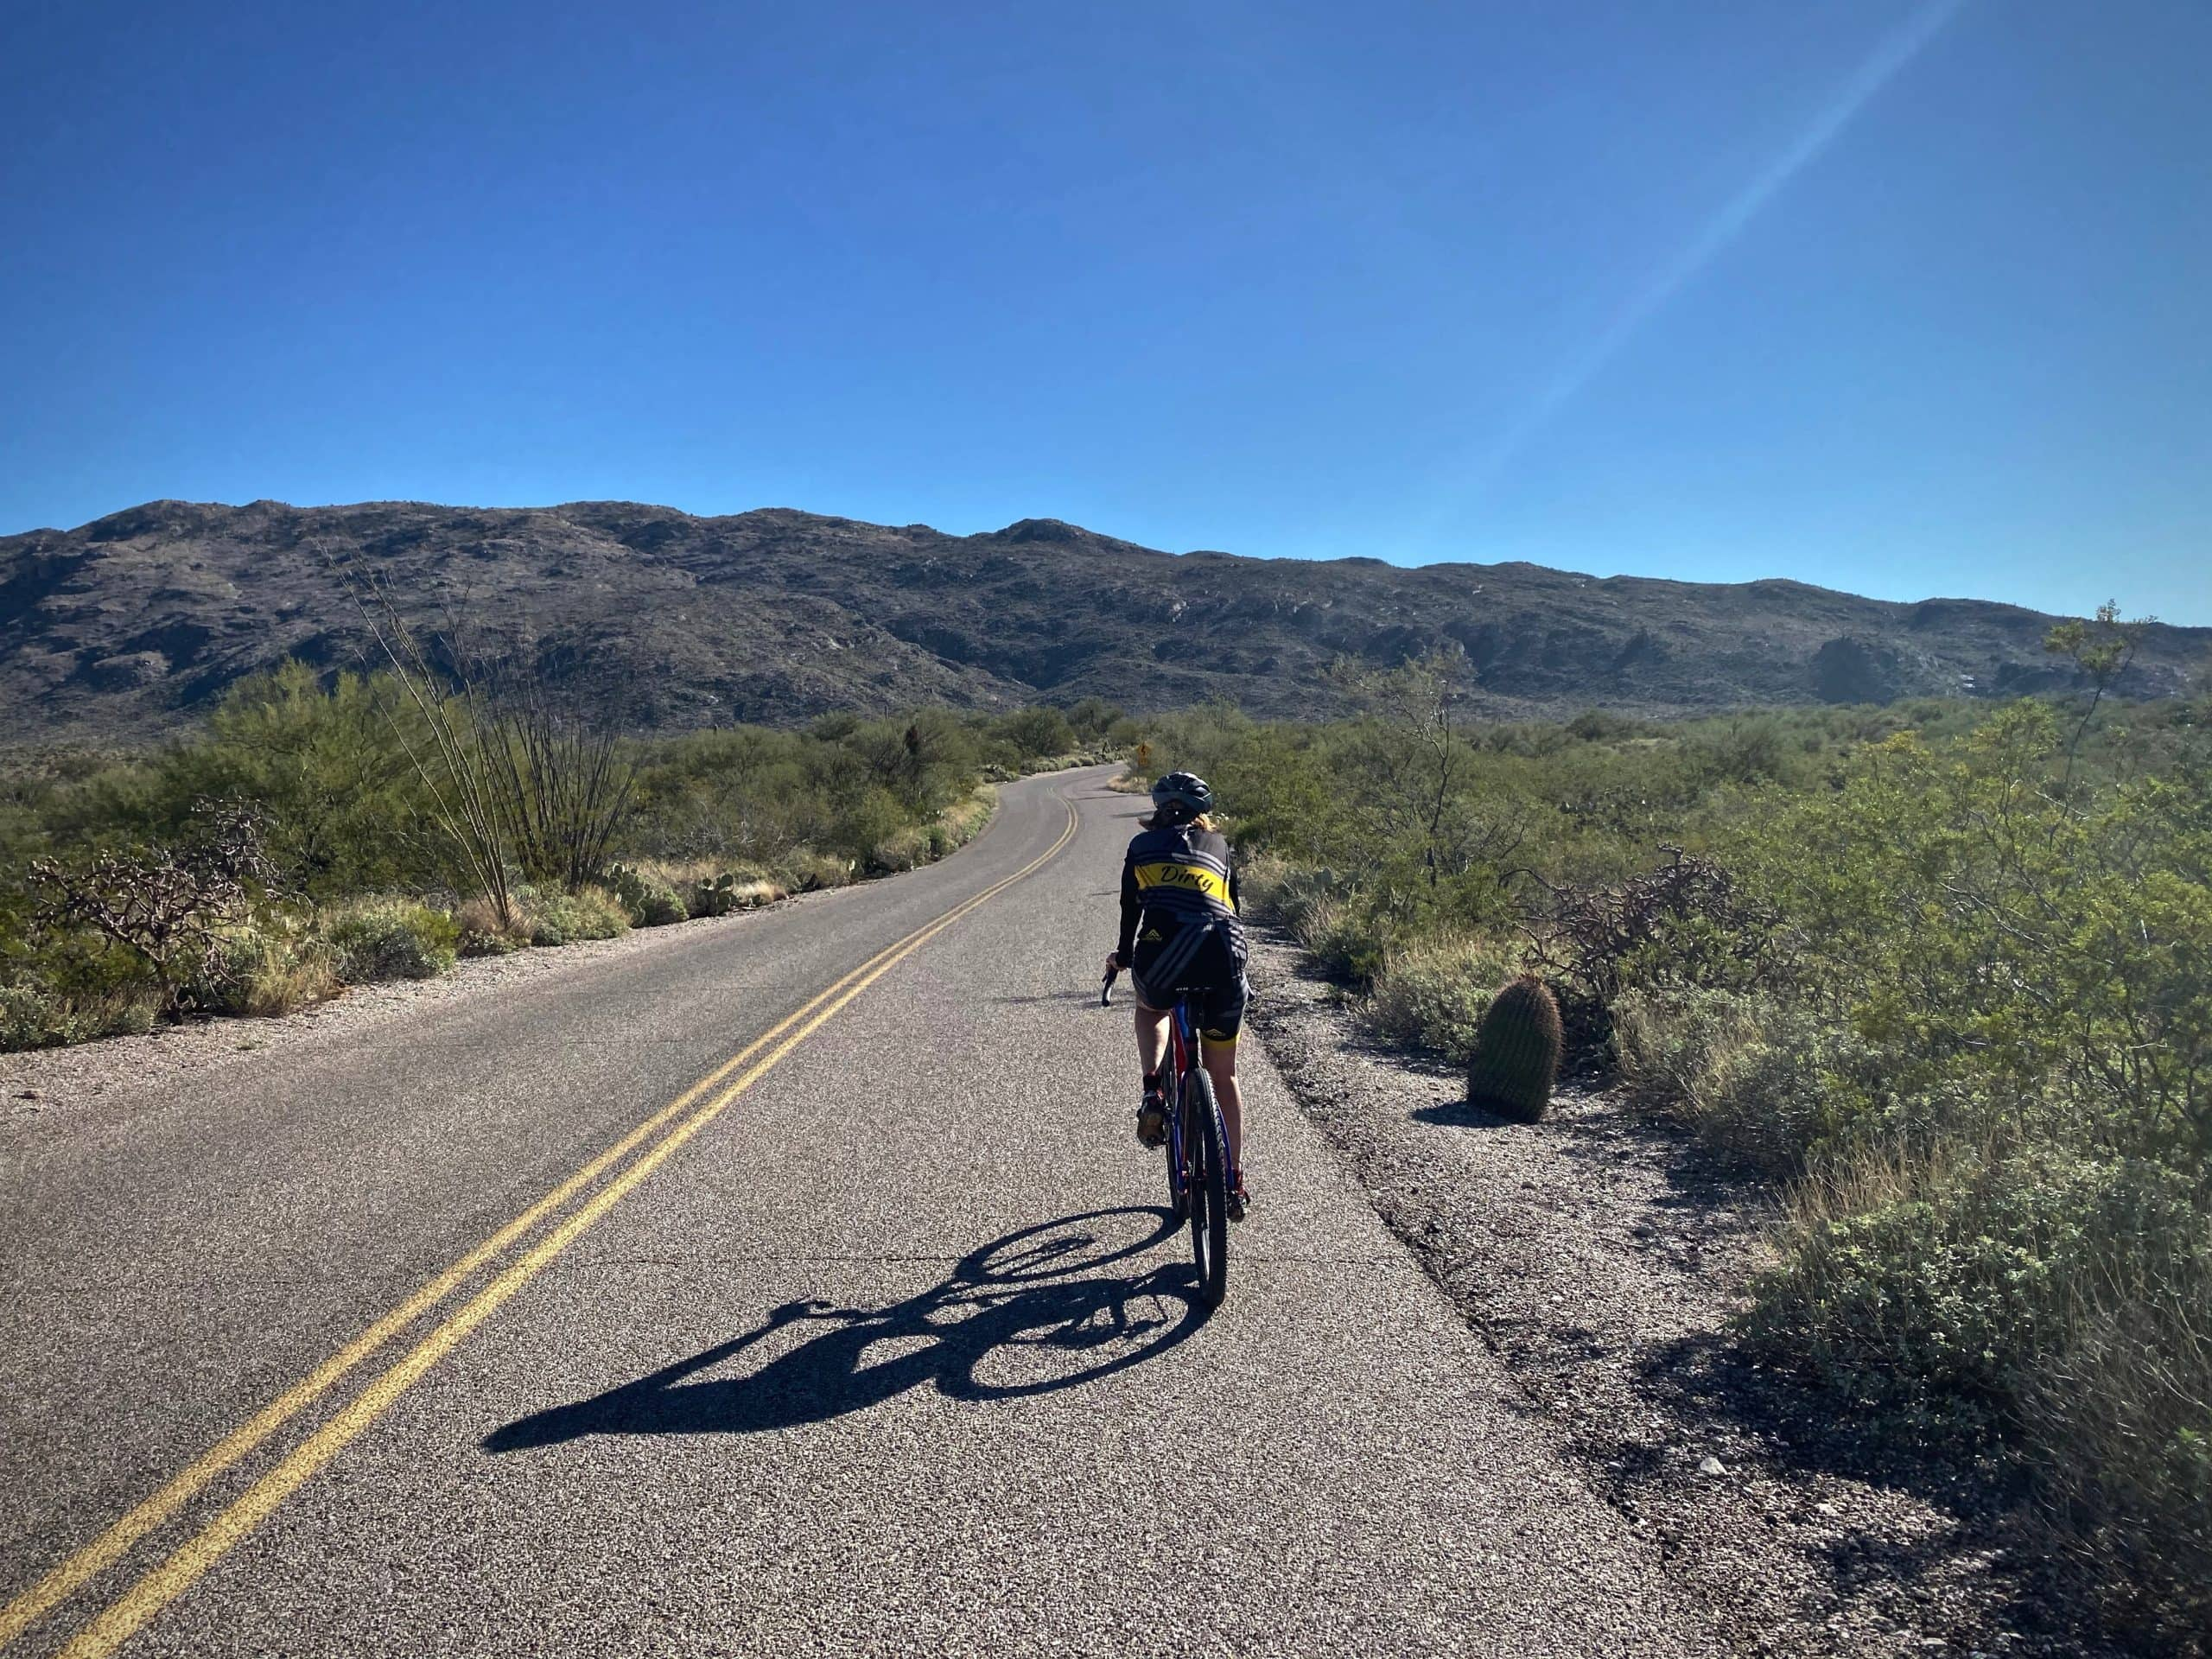 Cyclist on Cactus Forest road in Saguaro National Park in Tucson, Arizona.